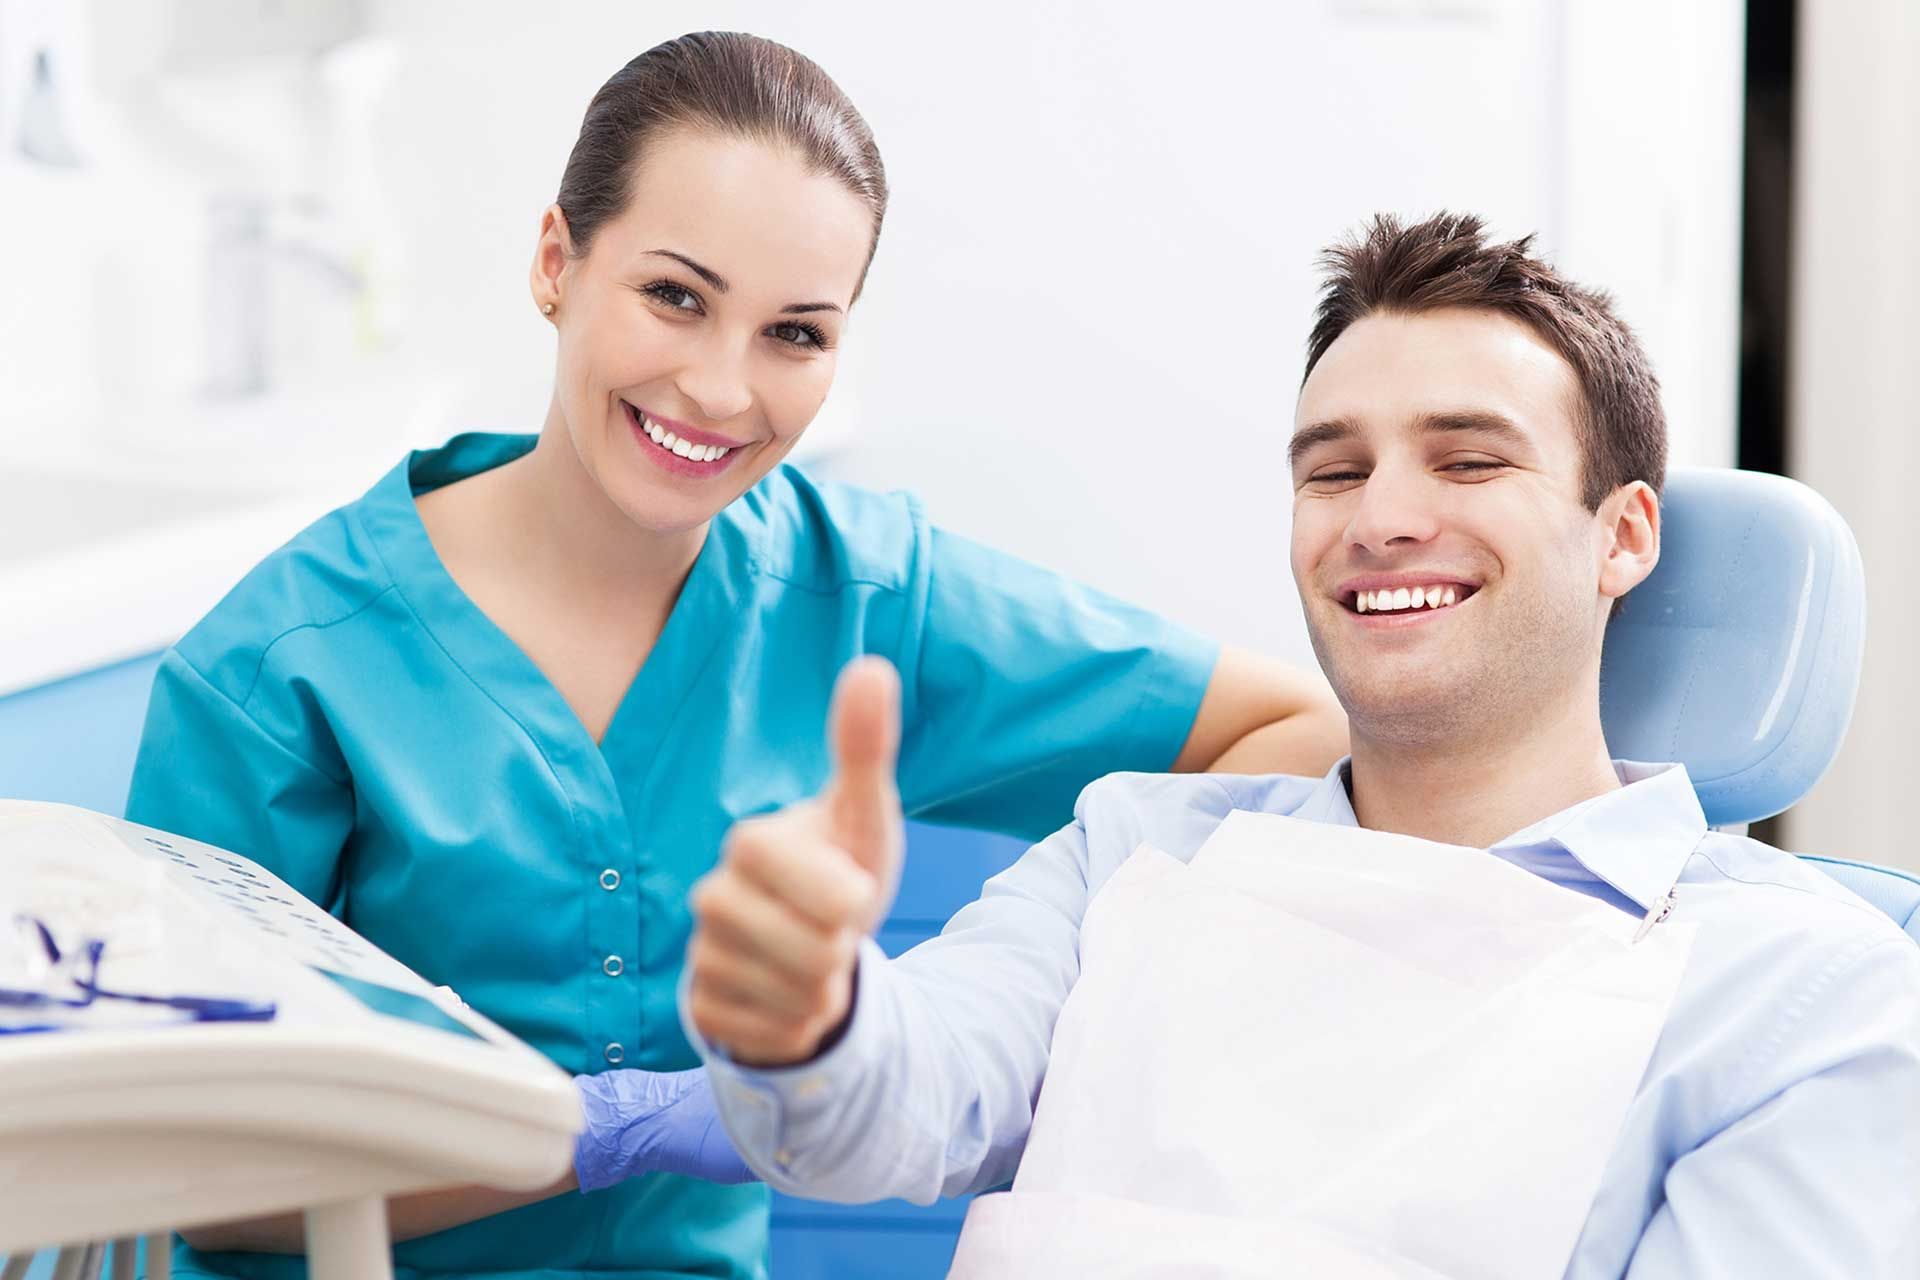 If you are in search of affordable and reliable dental